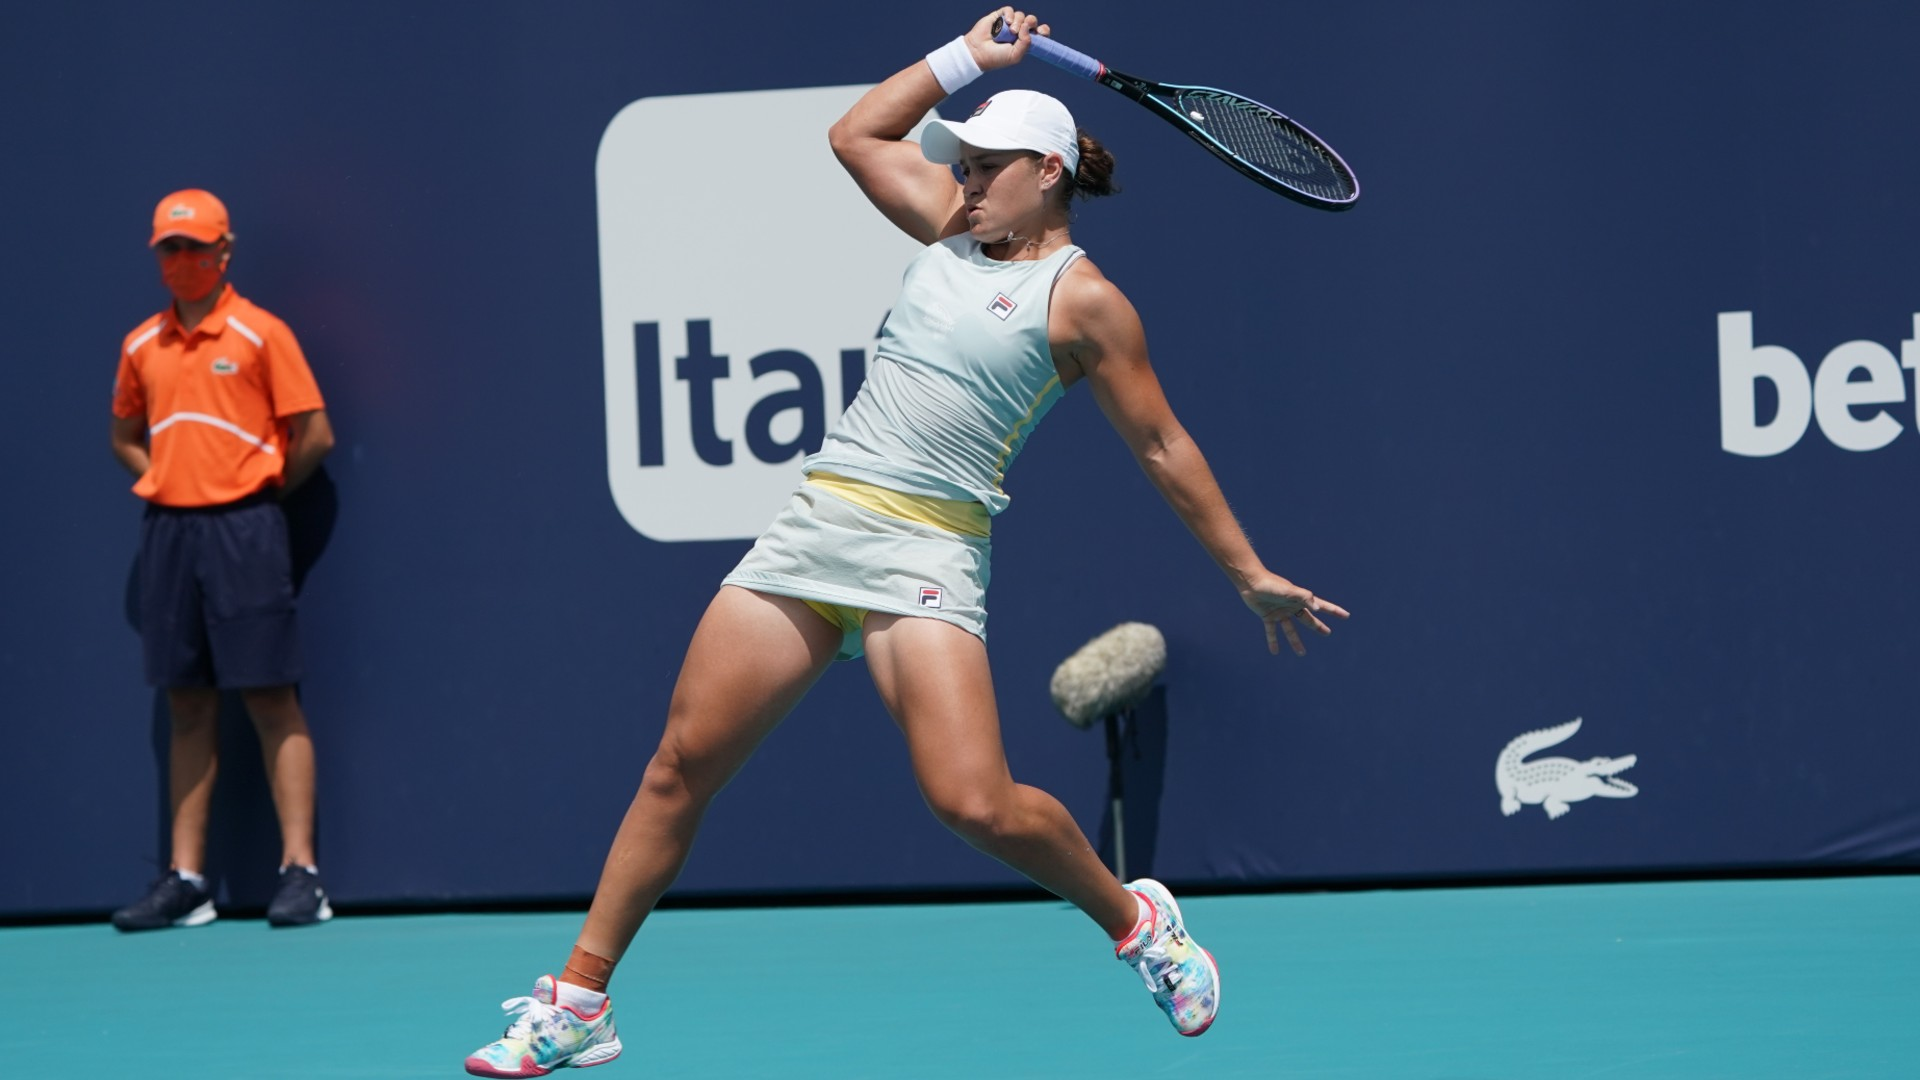 Barty and Azarenka to meet in Miami showdown, Halep withdraws